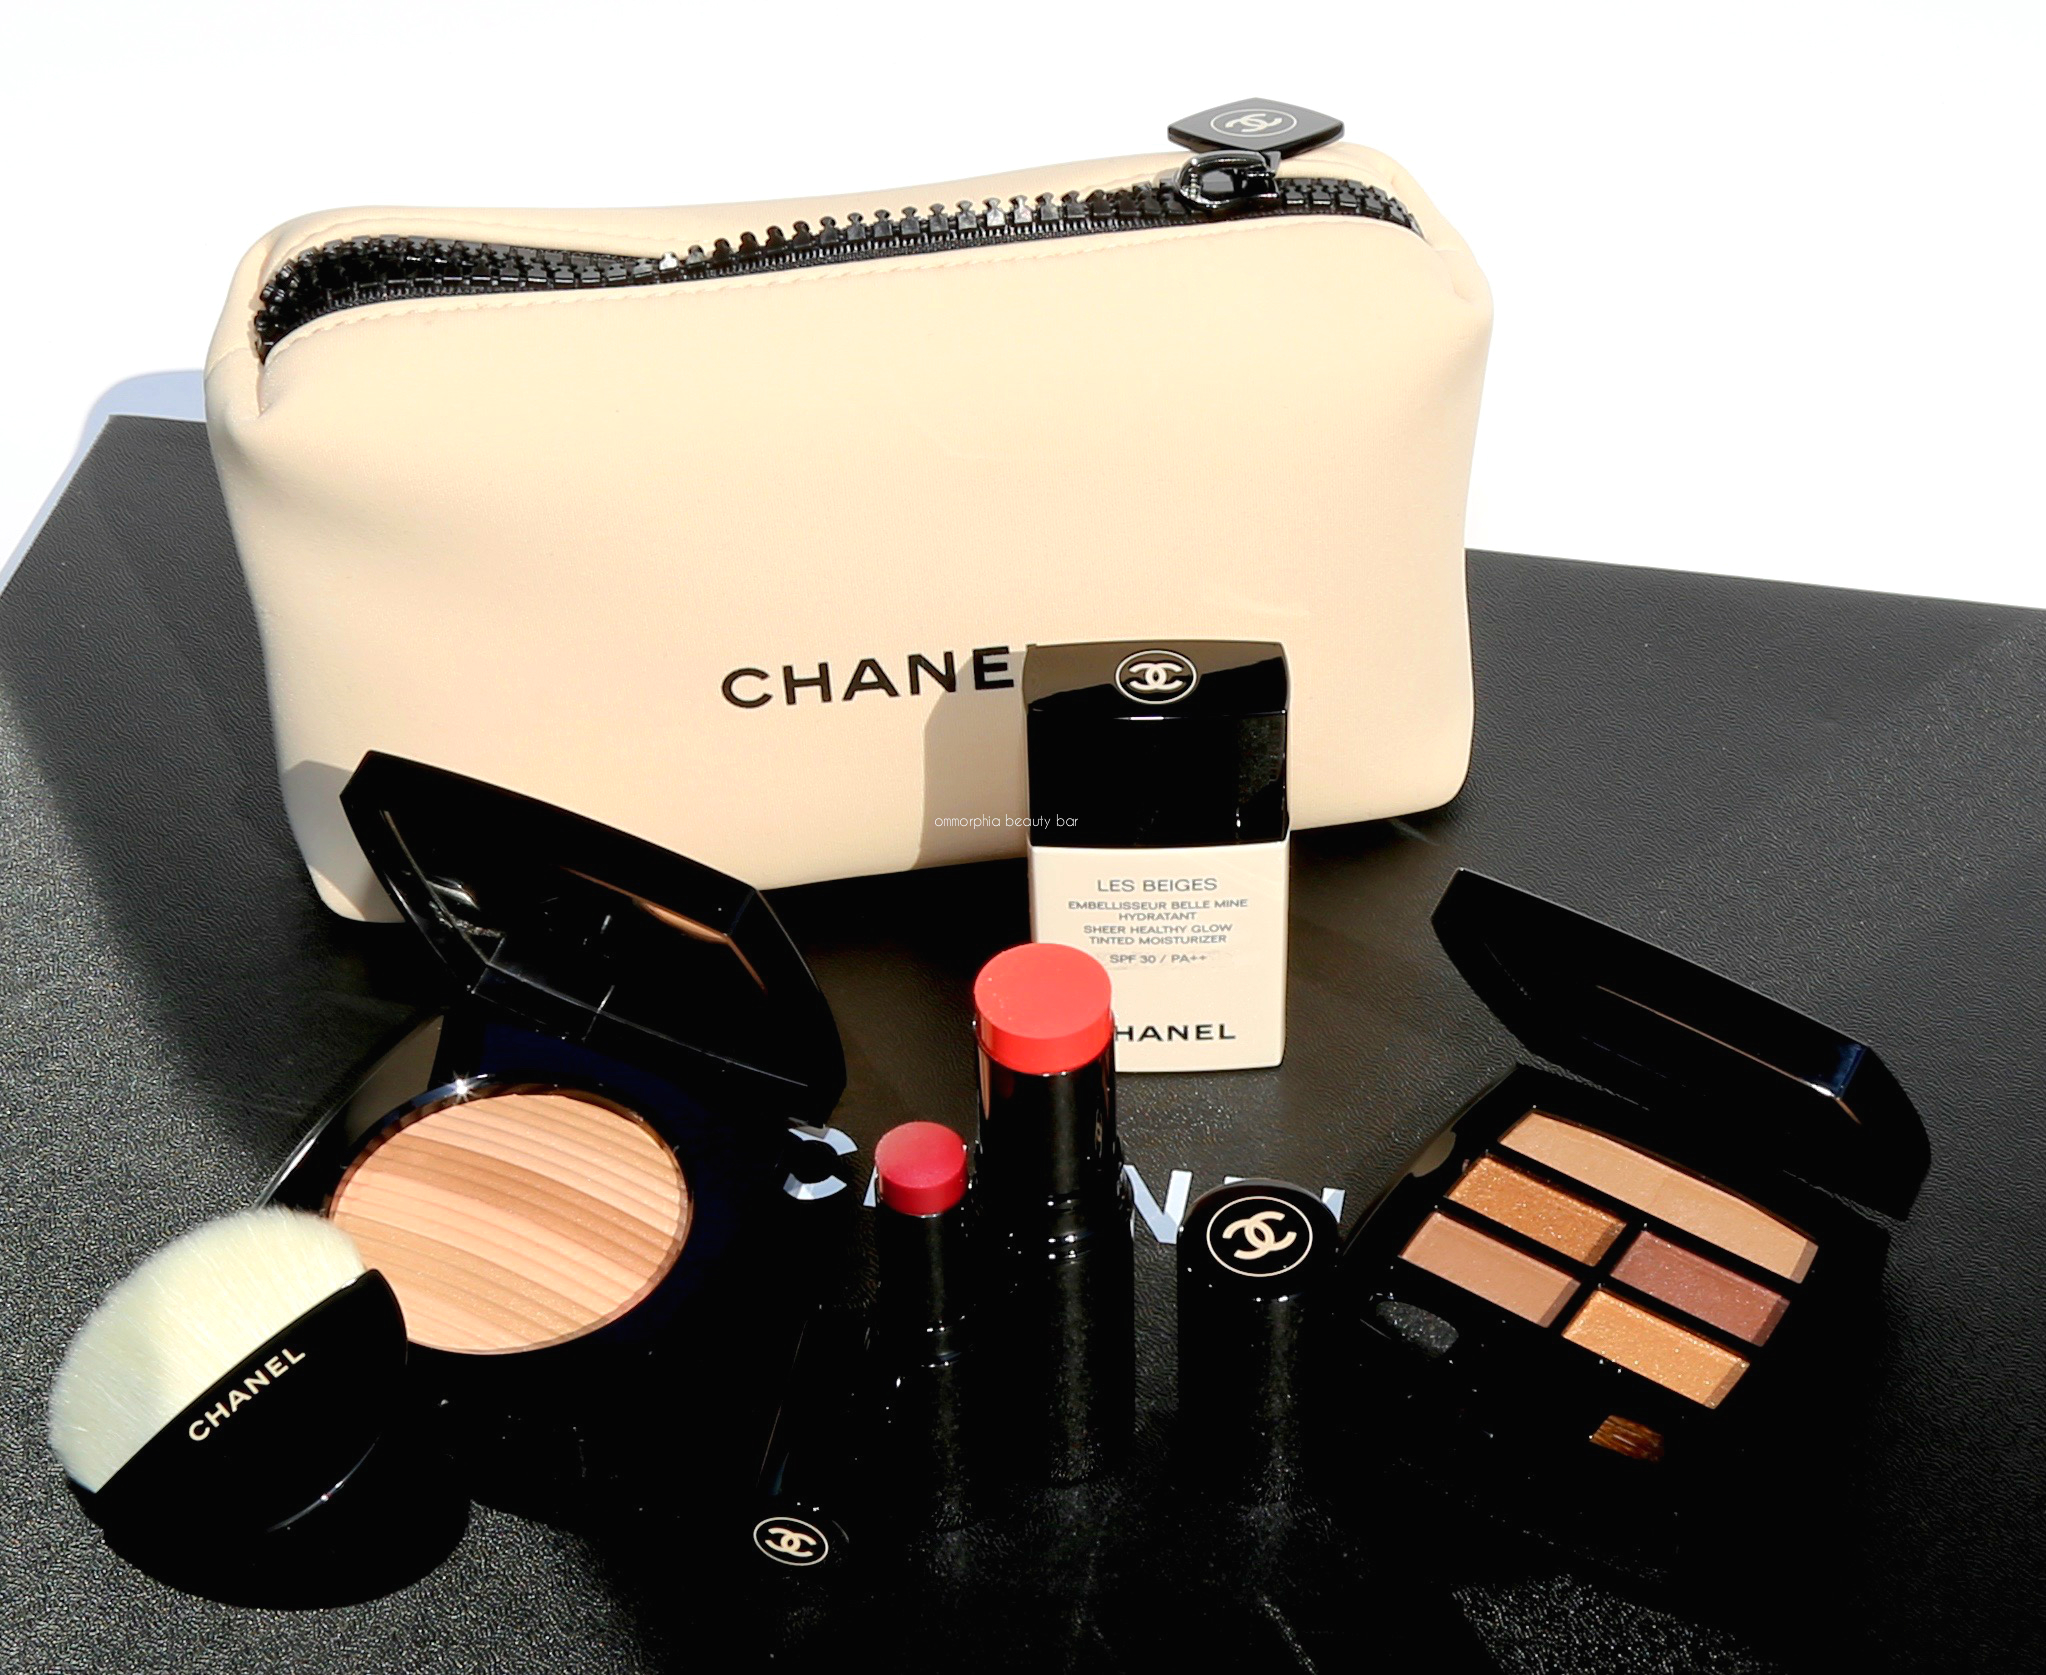 e4aba456fd94 In 2013 when CHANEL launched Les Beiges, to say that the concept turned out  to be iconic wouldn't be an overstatement, and since then the brand has ...